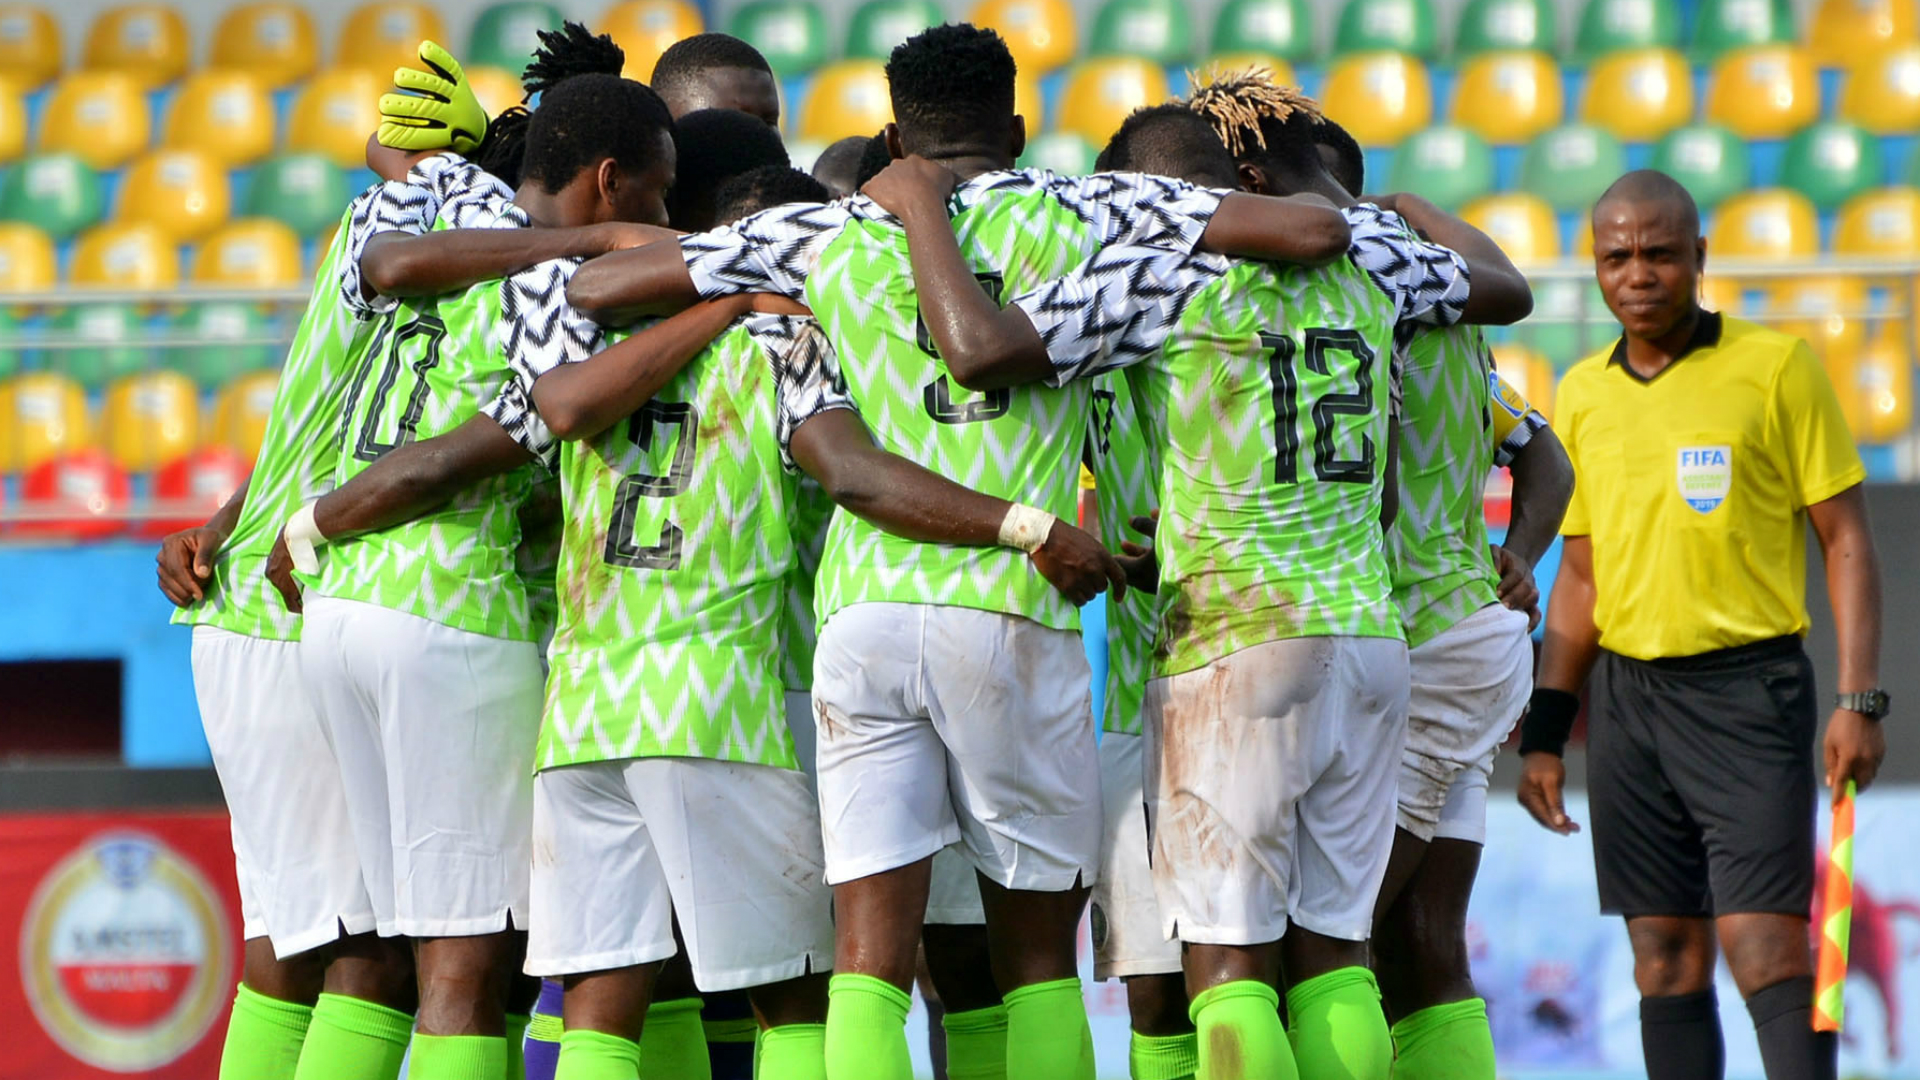 Nigeria 0-1 Cote d'Ivoire: Olympic Eagles begin U23 Afcon title defence on losing note